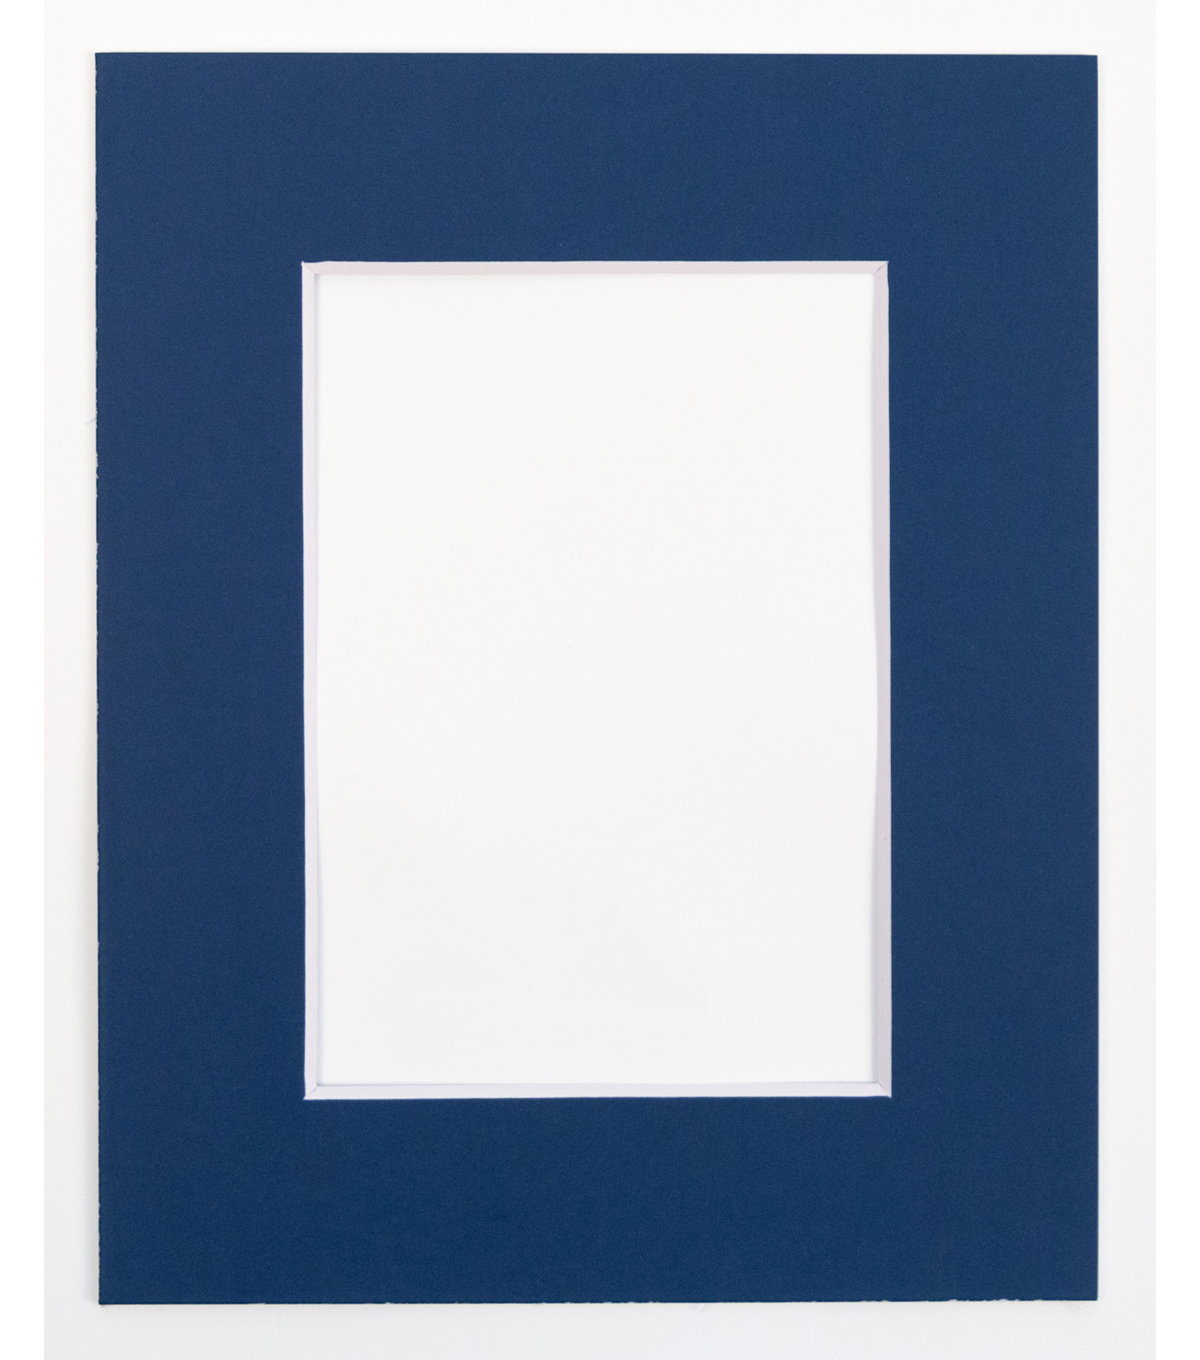 Framing Mat 8X10-Navy